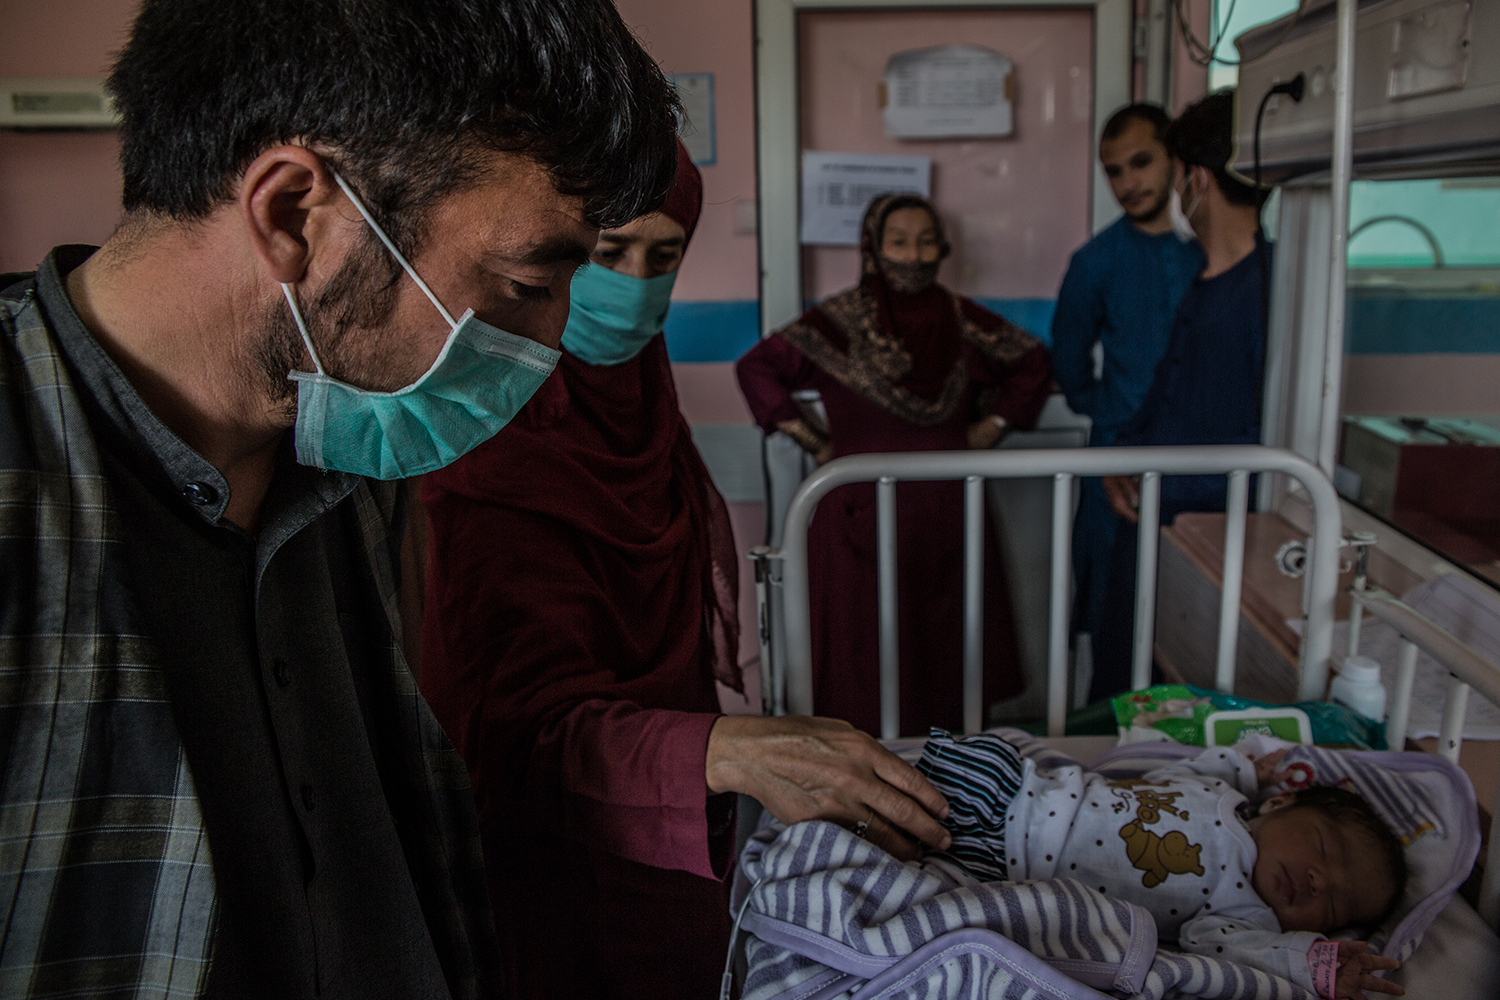 Mohammed Zahir, 30, who lost his wife in the attack after she had given birth to a baby boy, roams Kabul's hospitals on May 13 hoping to find his son who he had not yet met.